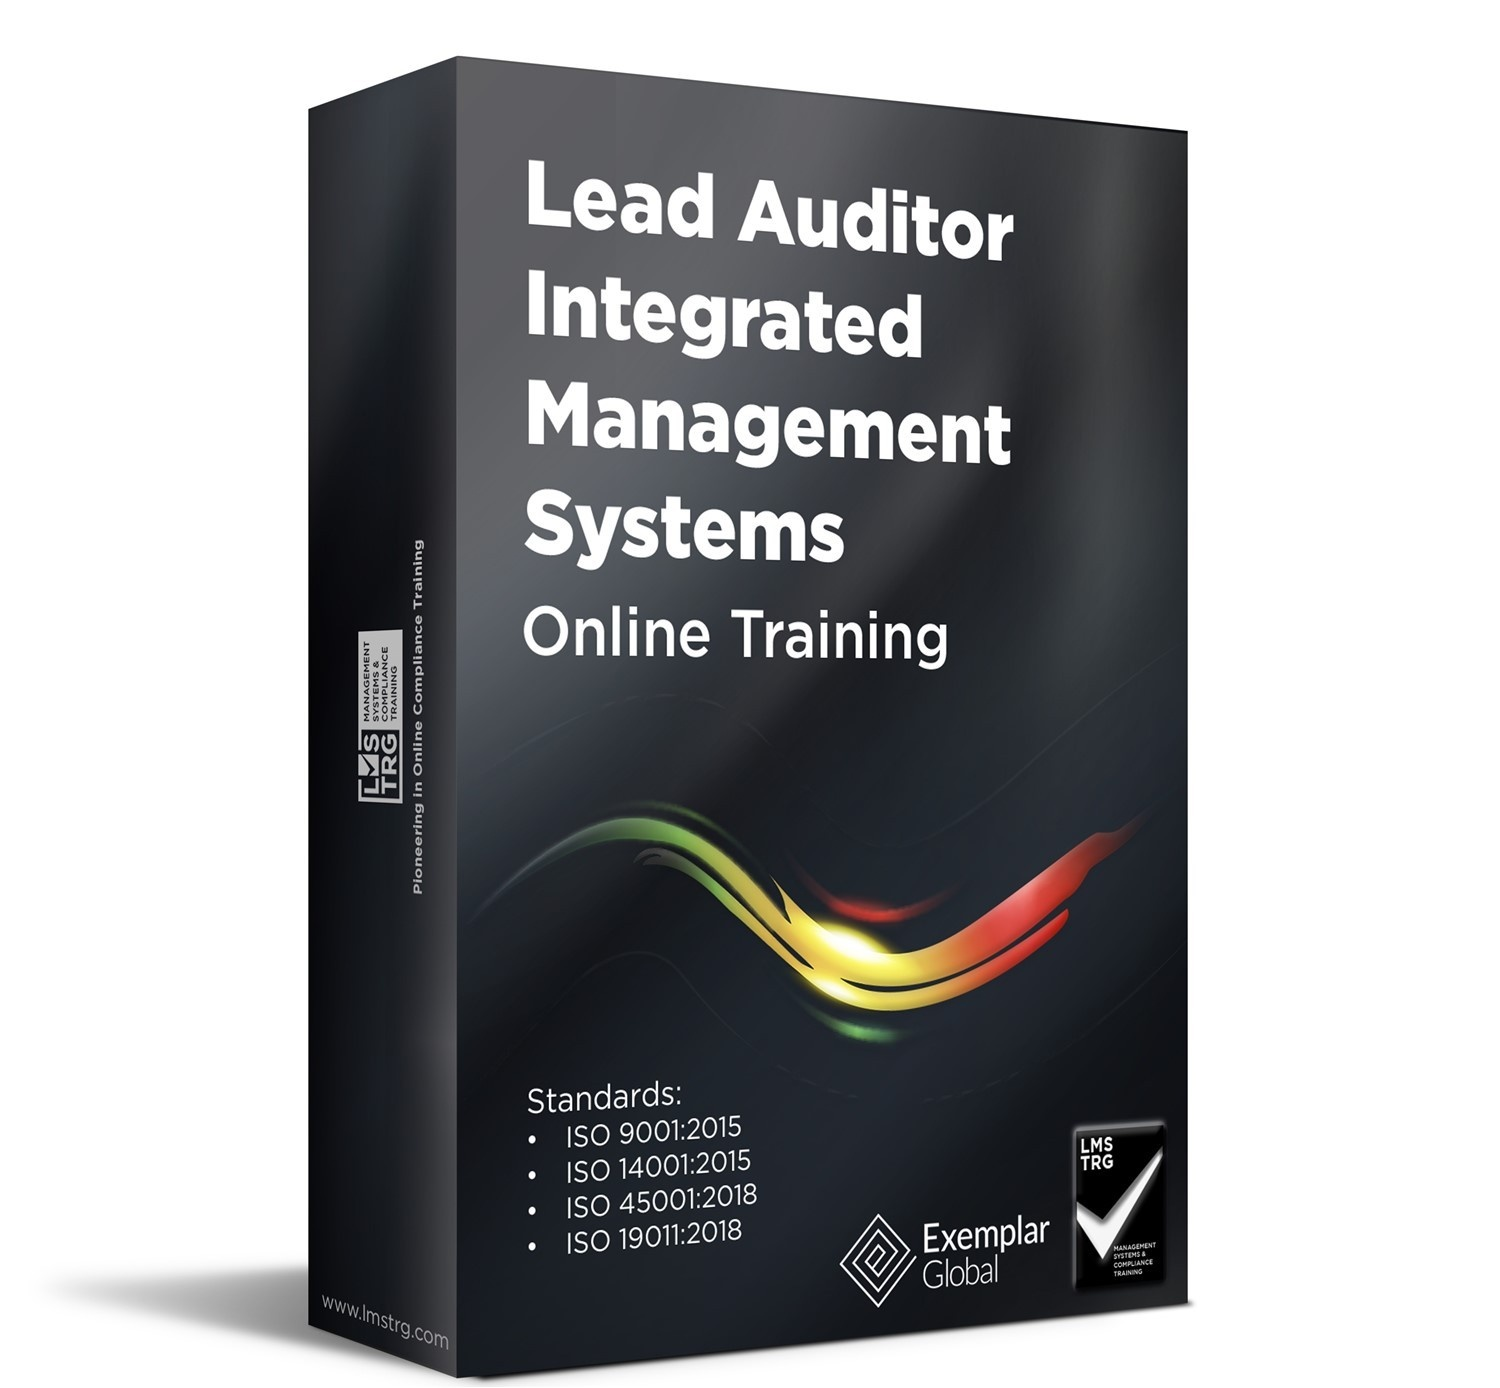 Integrated Management Systems (IMS) Lead Auditor ISO Online Course